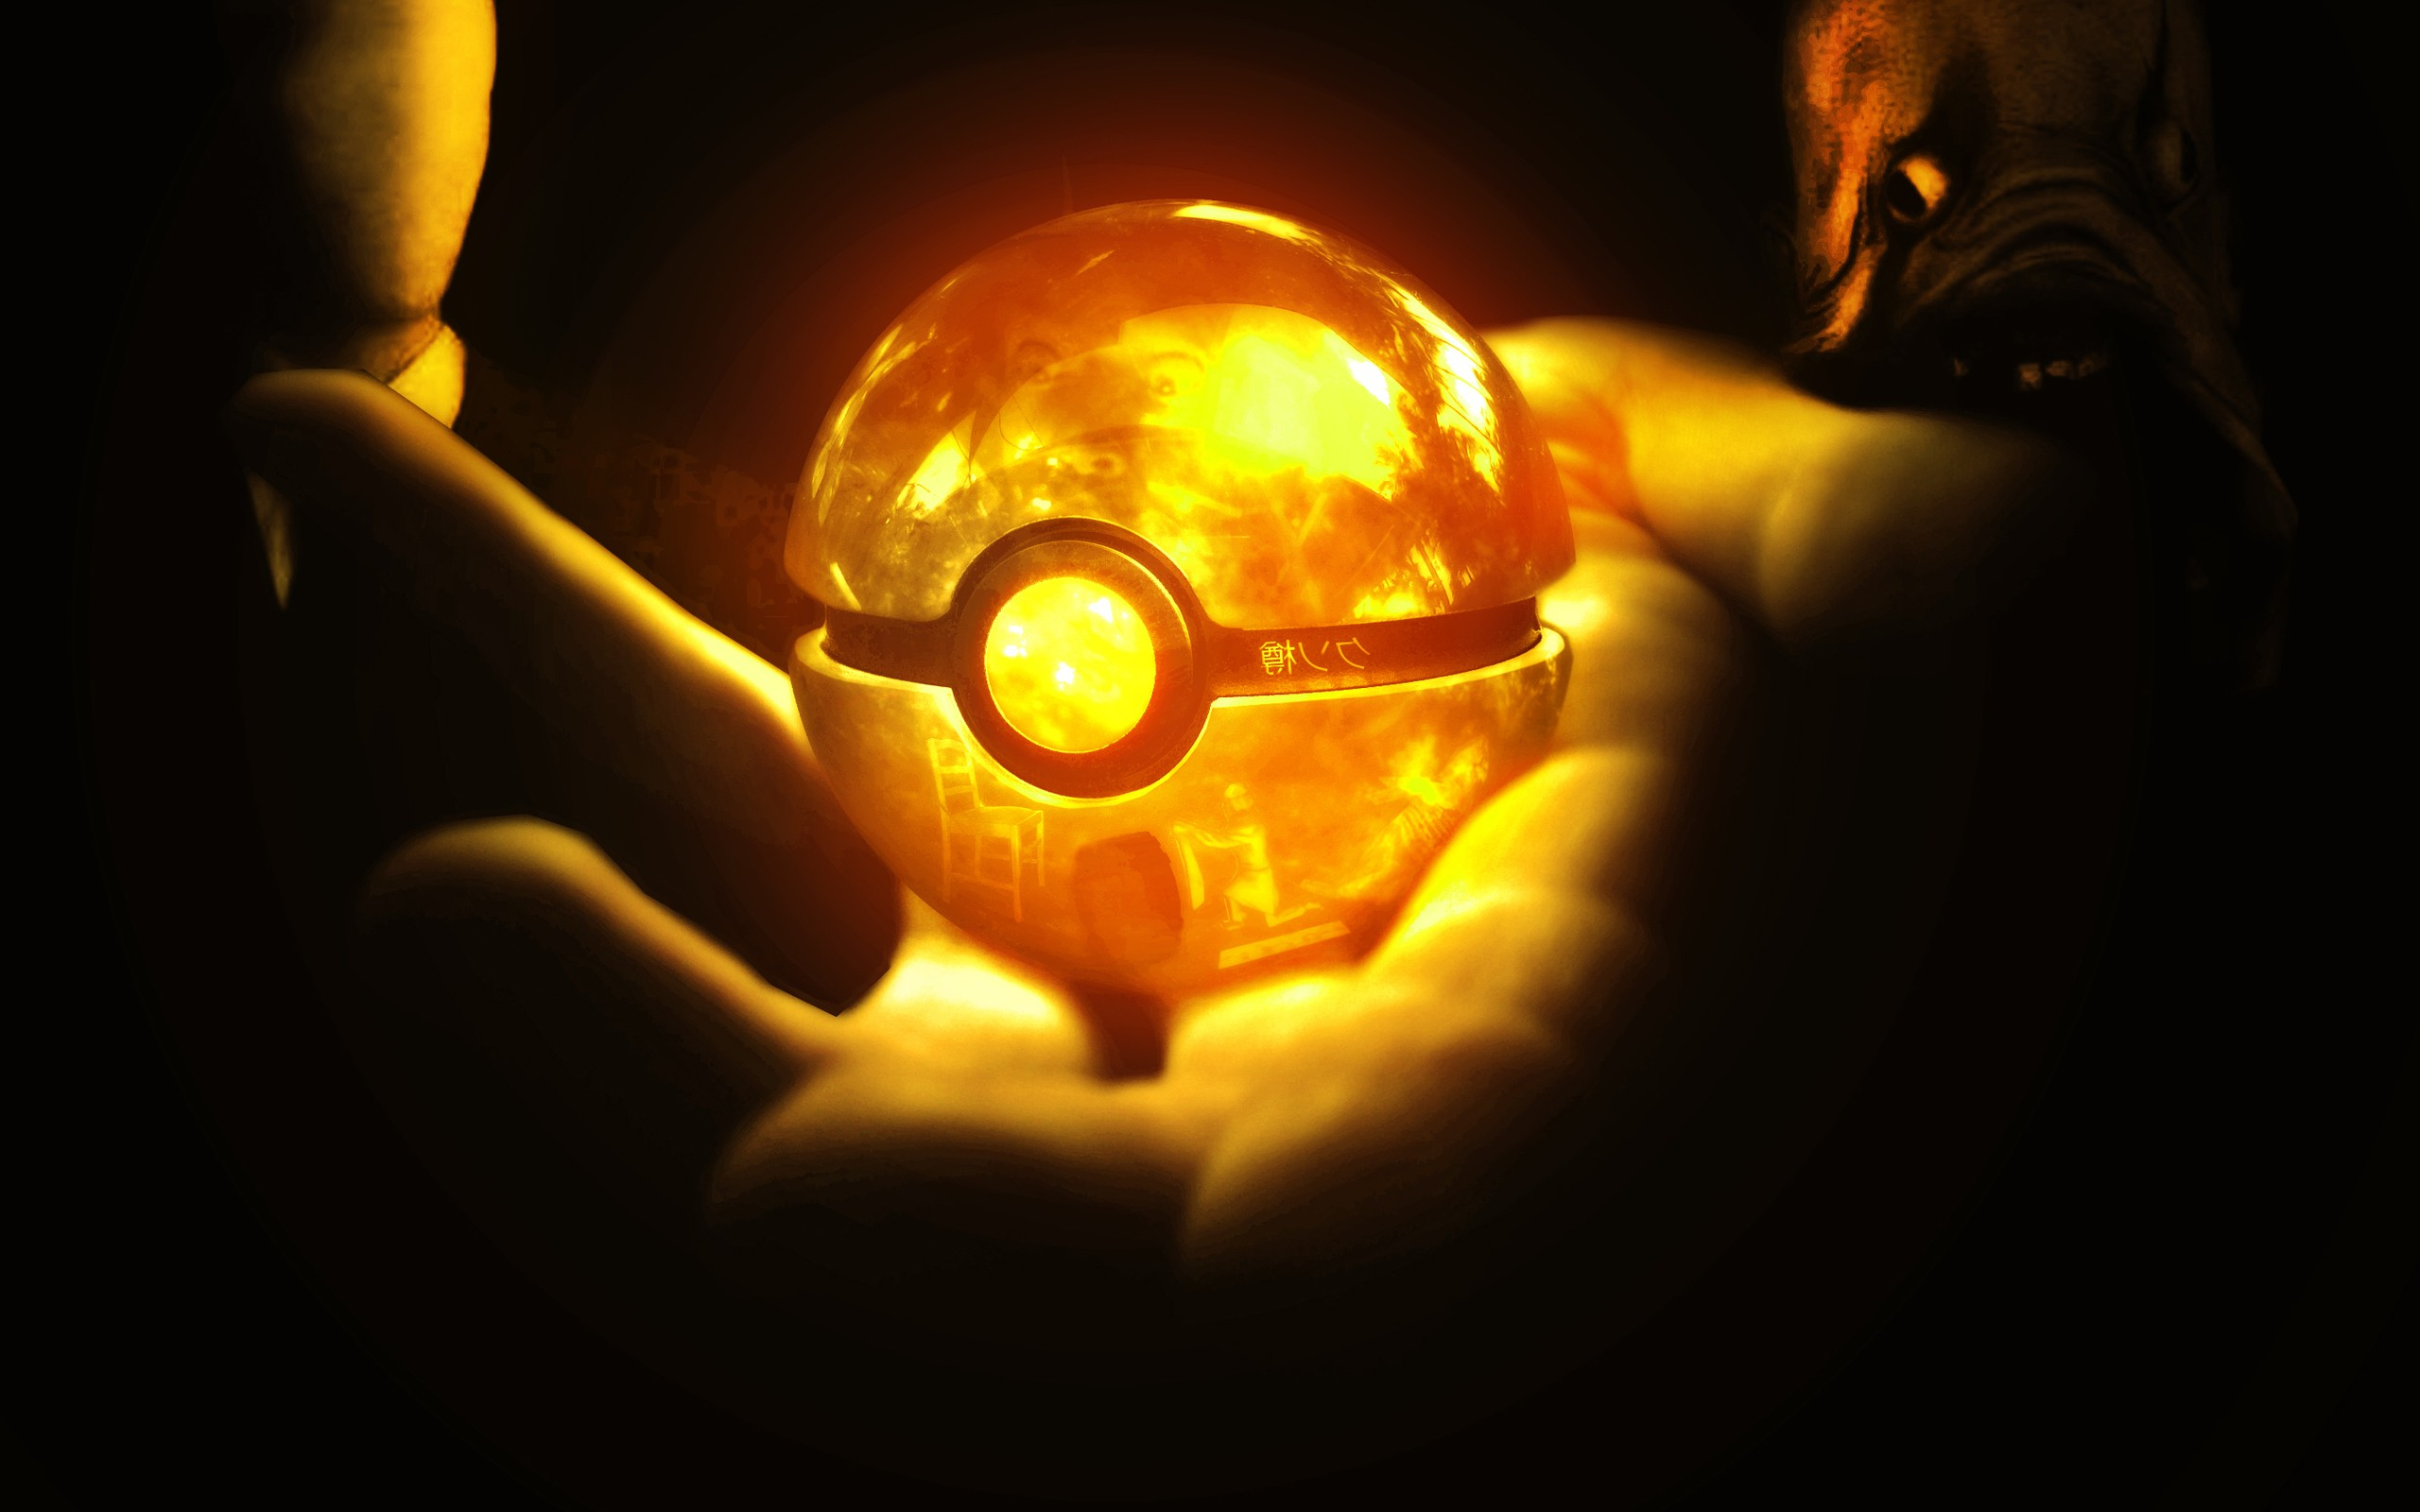 Pokemon Go Android Games Hd Wallpapers Freshwidewallpapers Com